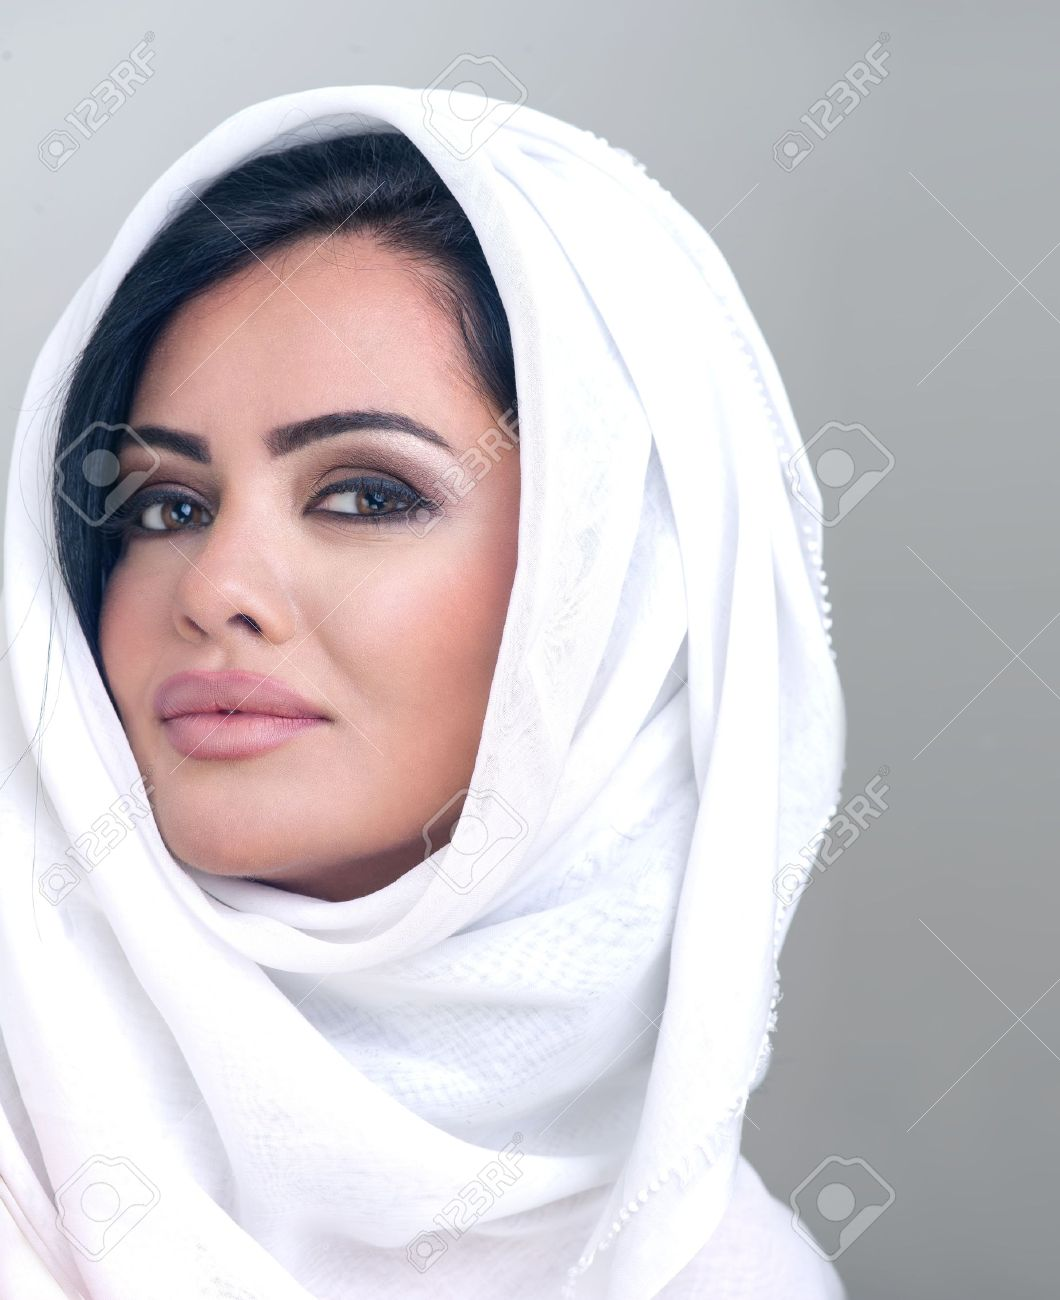 Sensual Portrait Of A Fresh Beauty Arabian Girl With Hijab Stock Photo 13736420